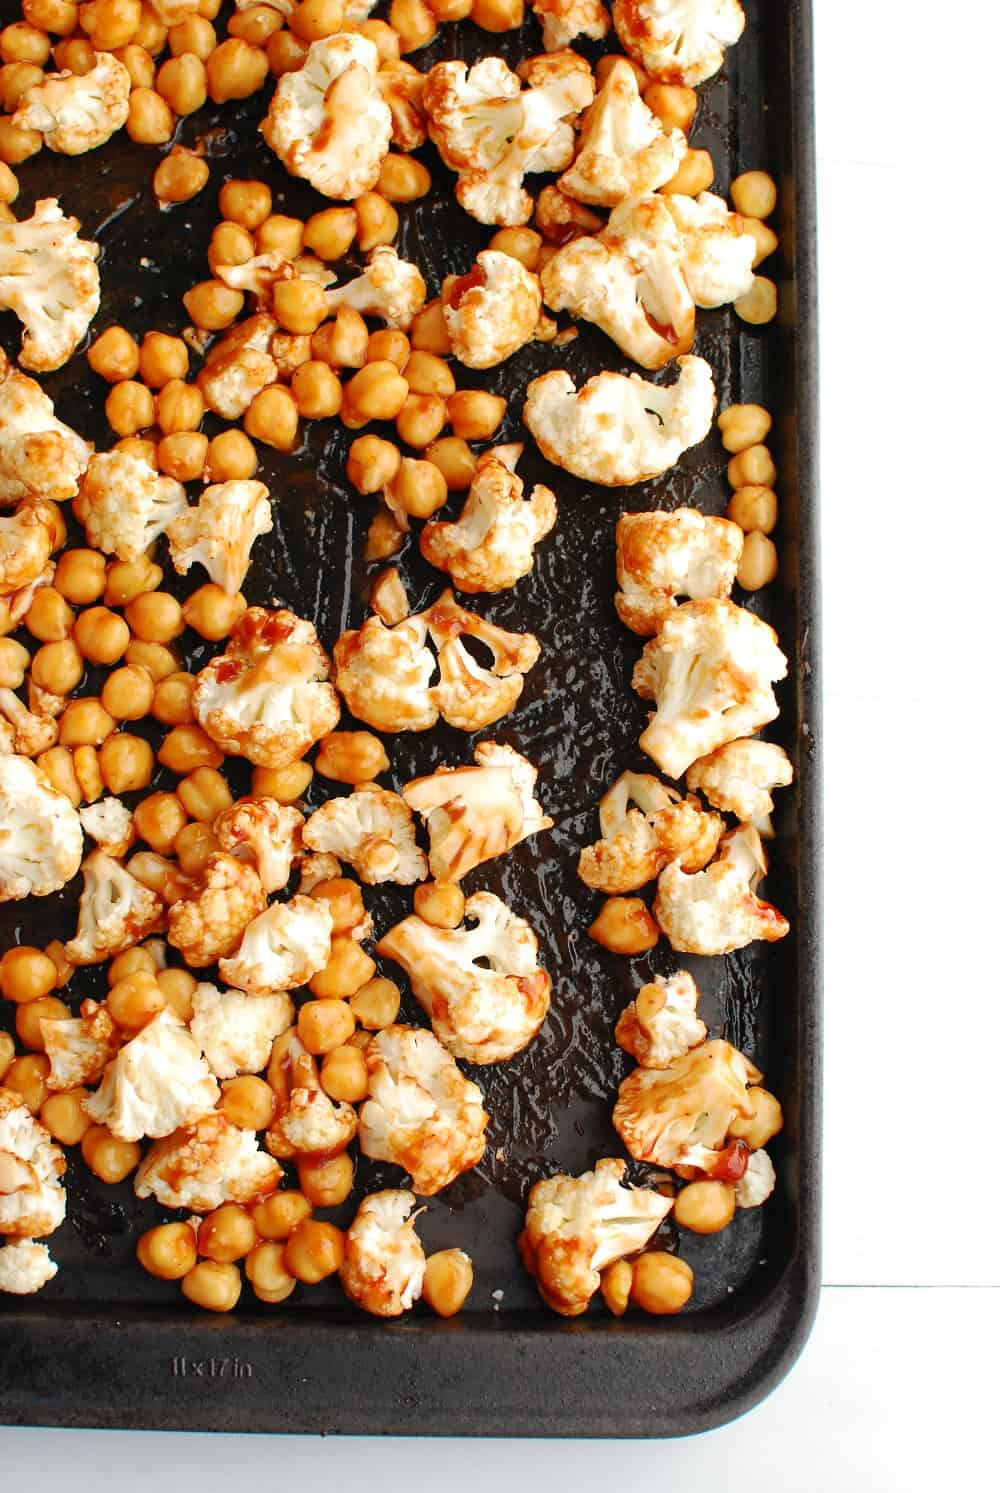 a pan full of cauliflower and chickpeas tossed in bbq sauce